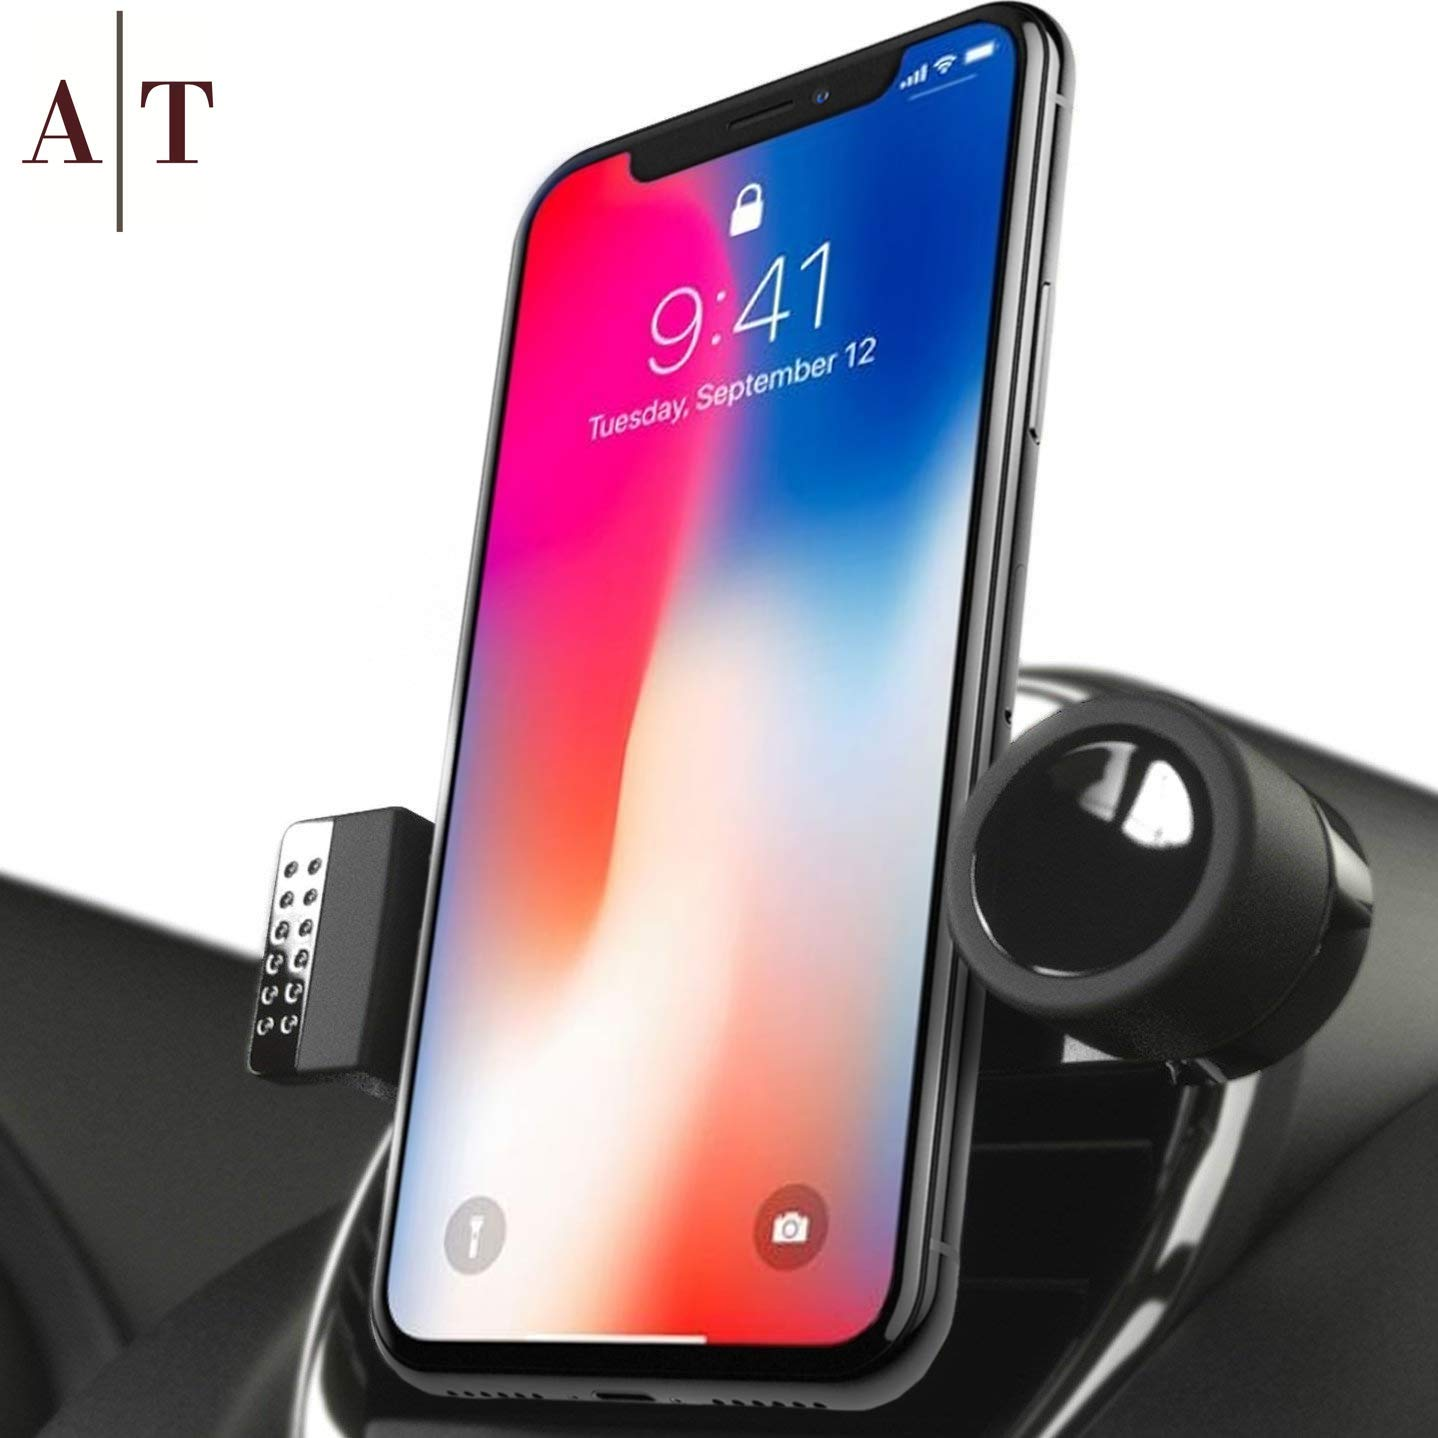 SALE - Cell Phone Holder For Car Air Vents | 360° Rotation Car Phone Mount,  Fits All Smartphones - iPhone X, XR, XS Max, 8, 7, 6, 5, | 6/7/8 Plus |